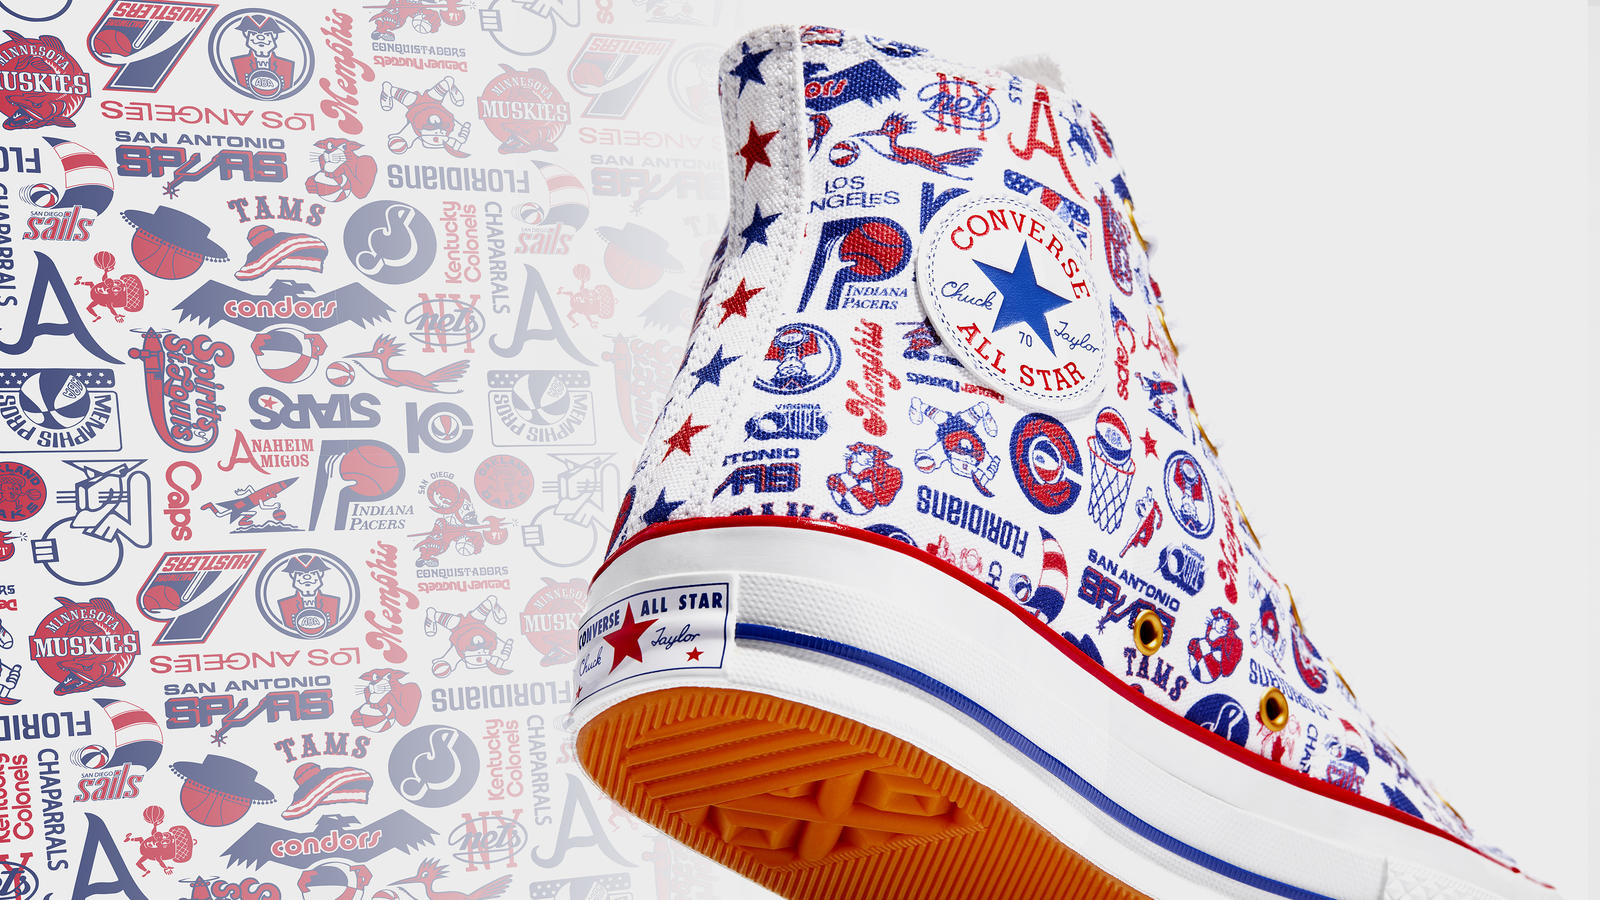 Converse Basketball ABA Capsule All Star BB Evo G4 Chuck 70 Official Images Release Date 3